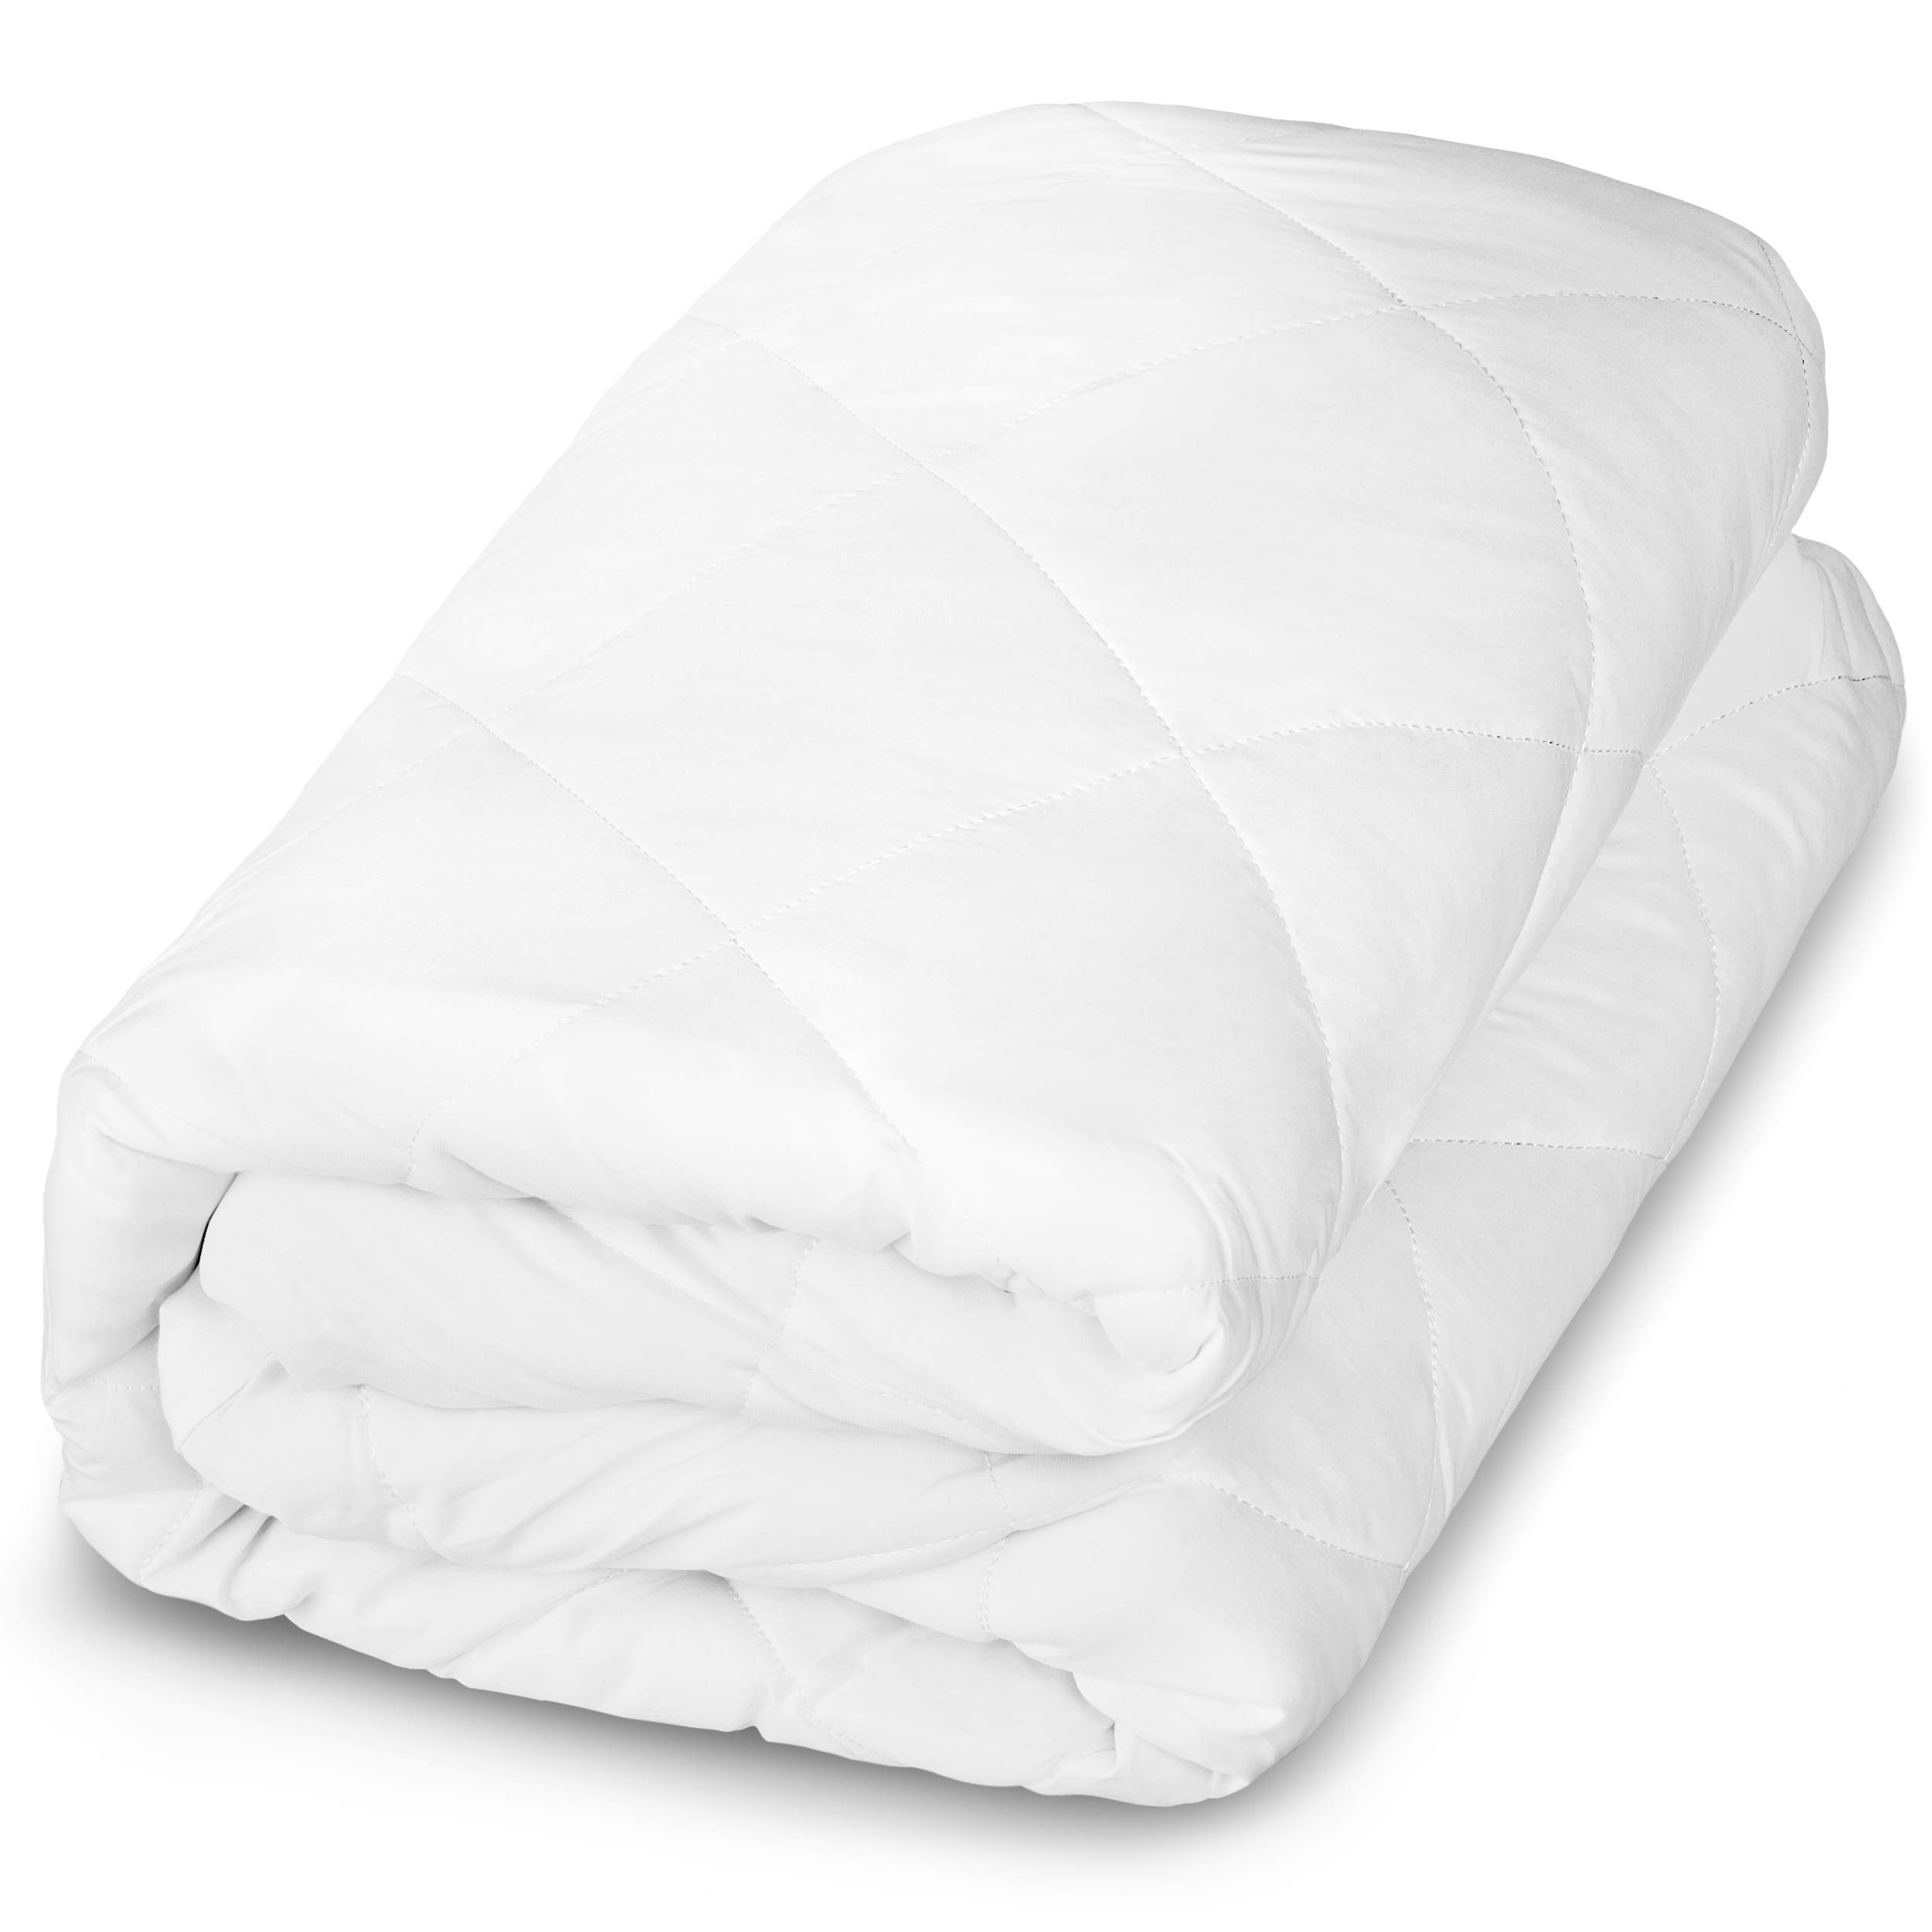 Bare Home Quilted Fitted Mattress Pad - Cooling Mattress Topper - Hypoallergenic Down Alternative Fiberfill - Stretch-To-Fit (Cal King)